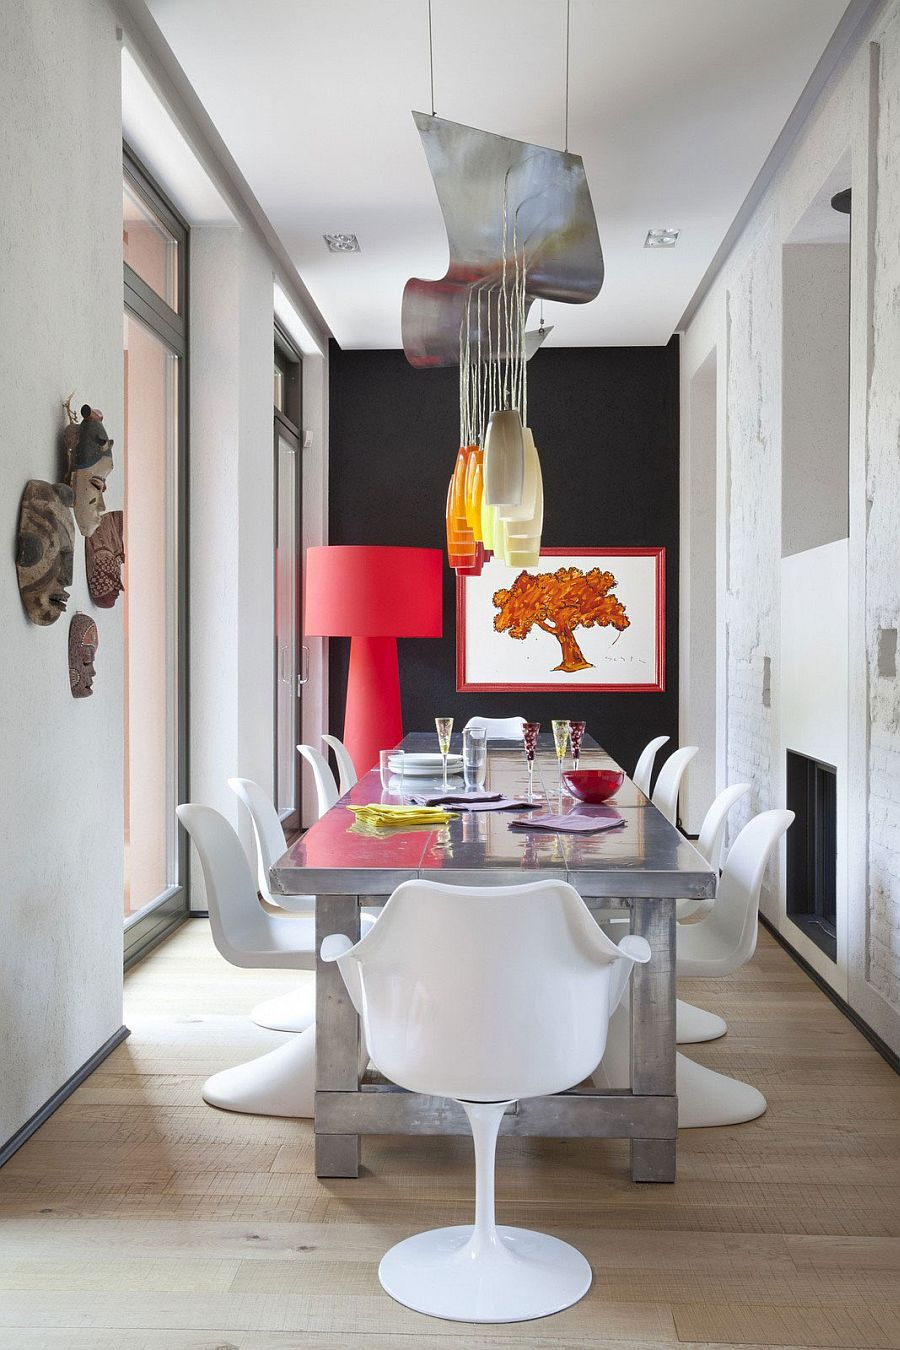 Formal dining area gets a colorful, fun twist inside this eclectic Italian home